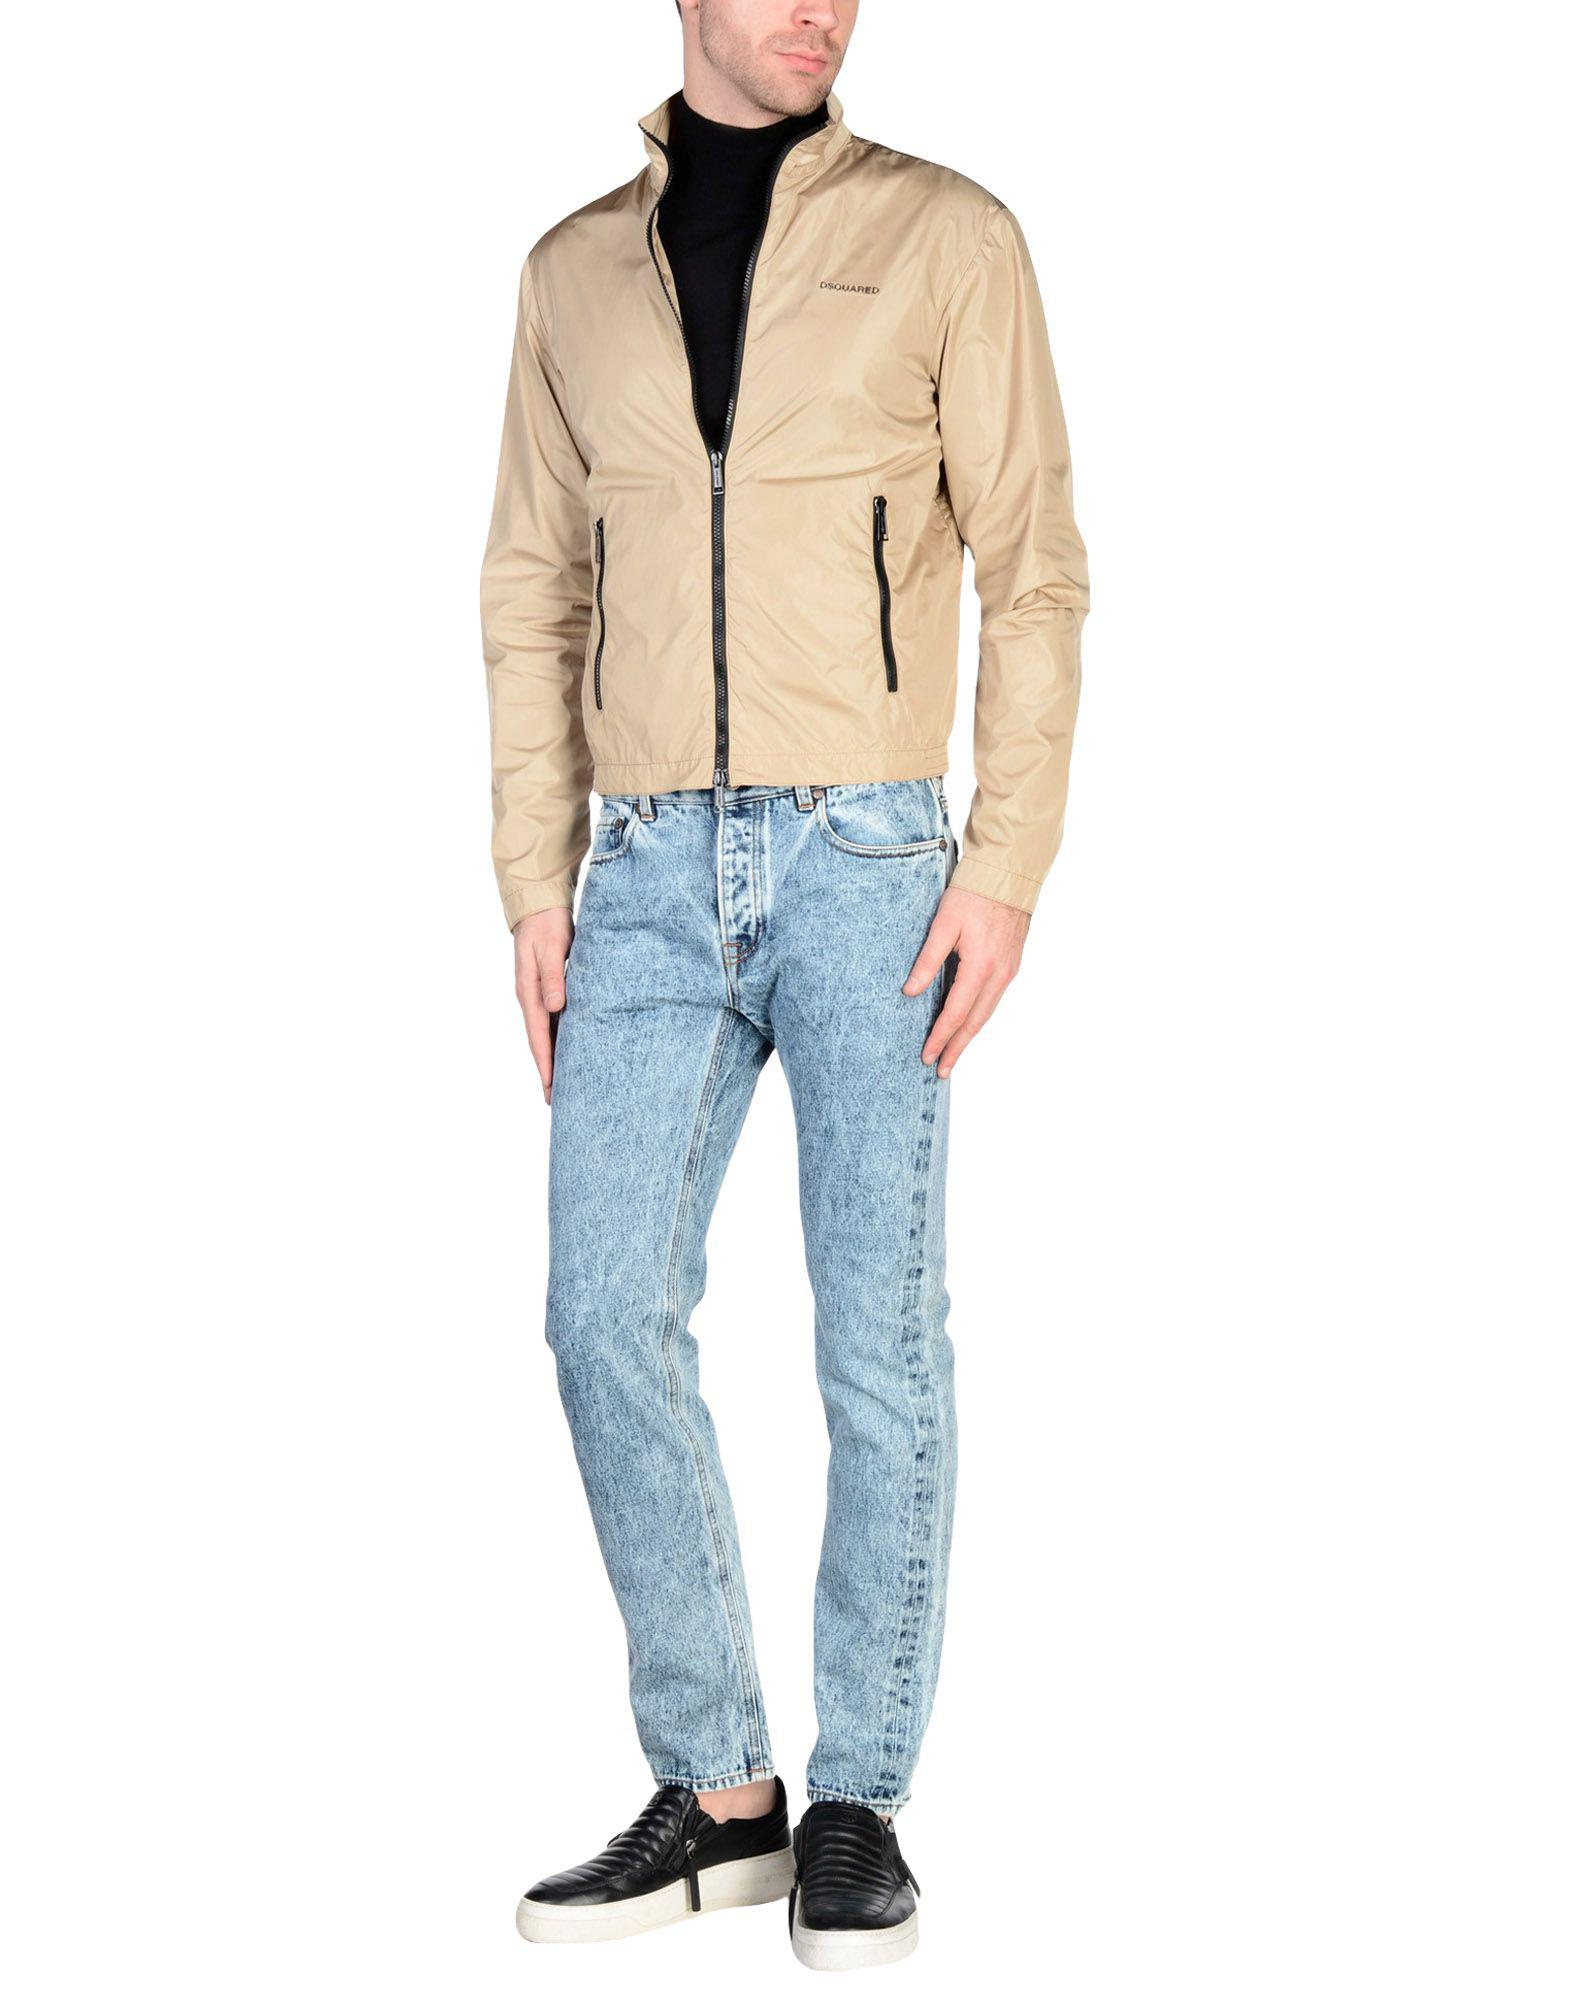 DSquared² Synthetic Jacket in Beige (Natural) for Men